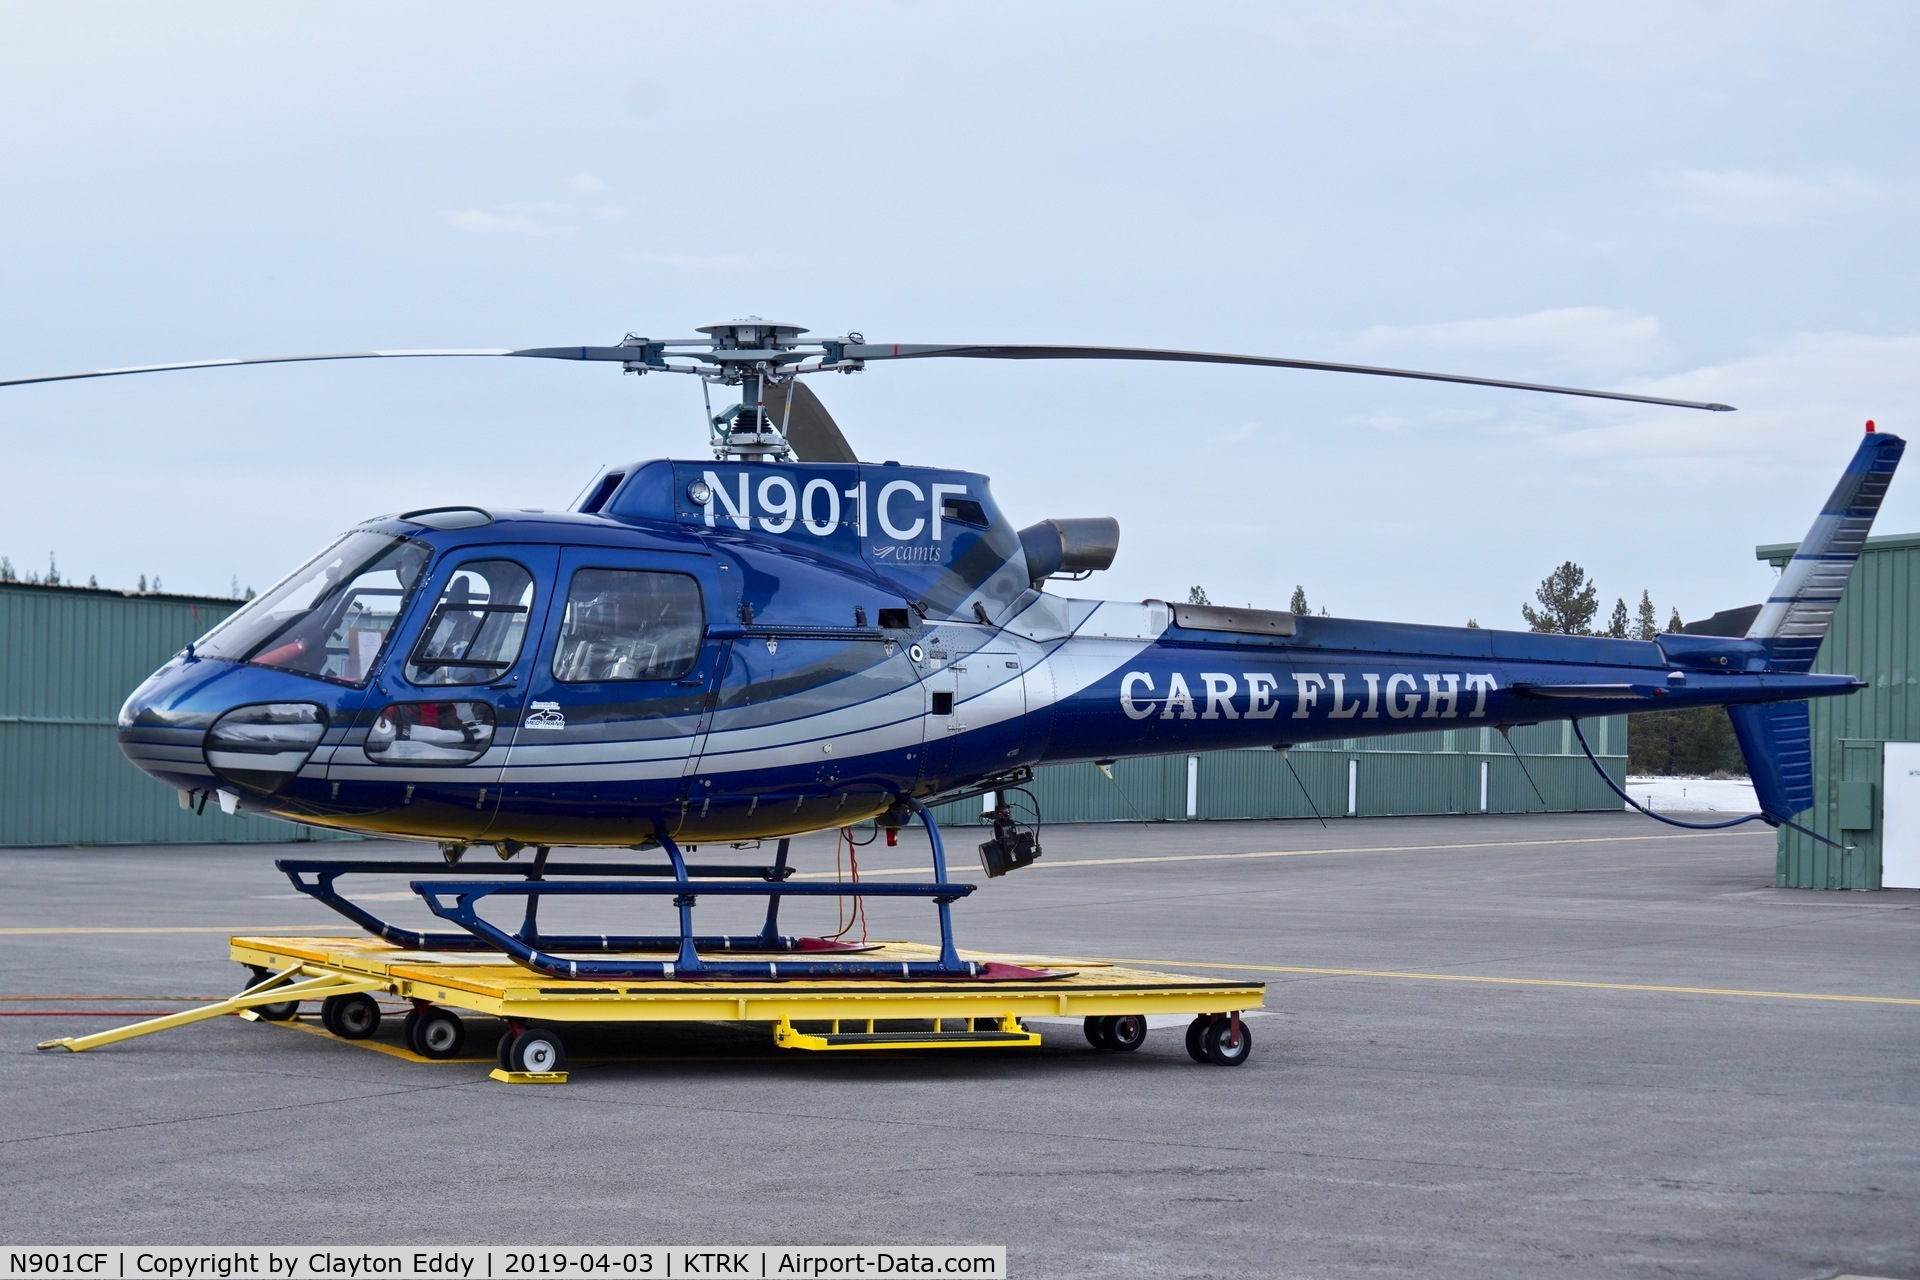 N901CF, 2006 Eurocopter AS-350B-3 Ecureuil C/N 4160, Truckee Airport California 2019.